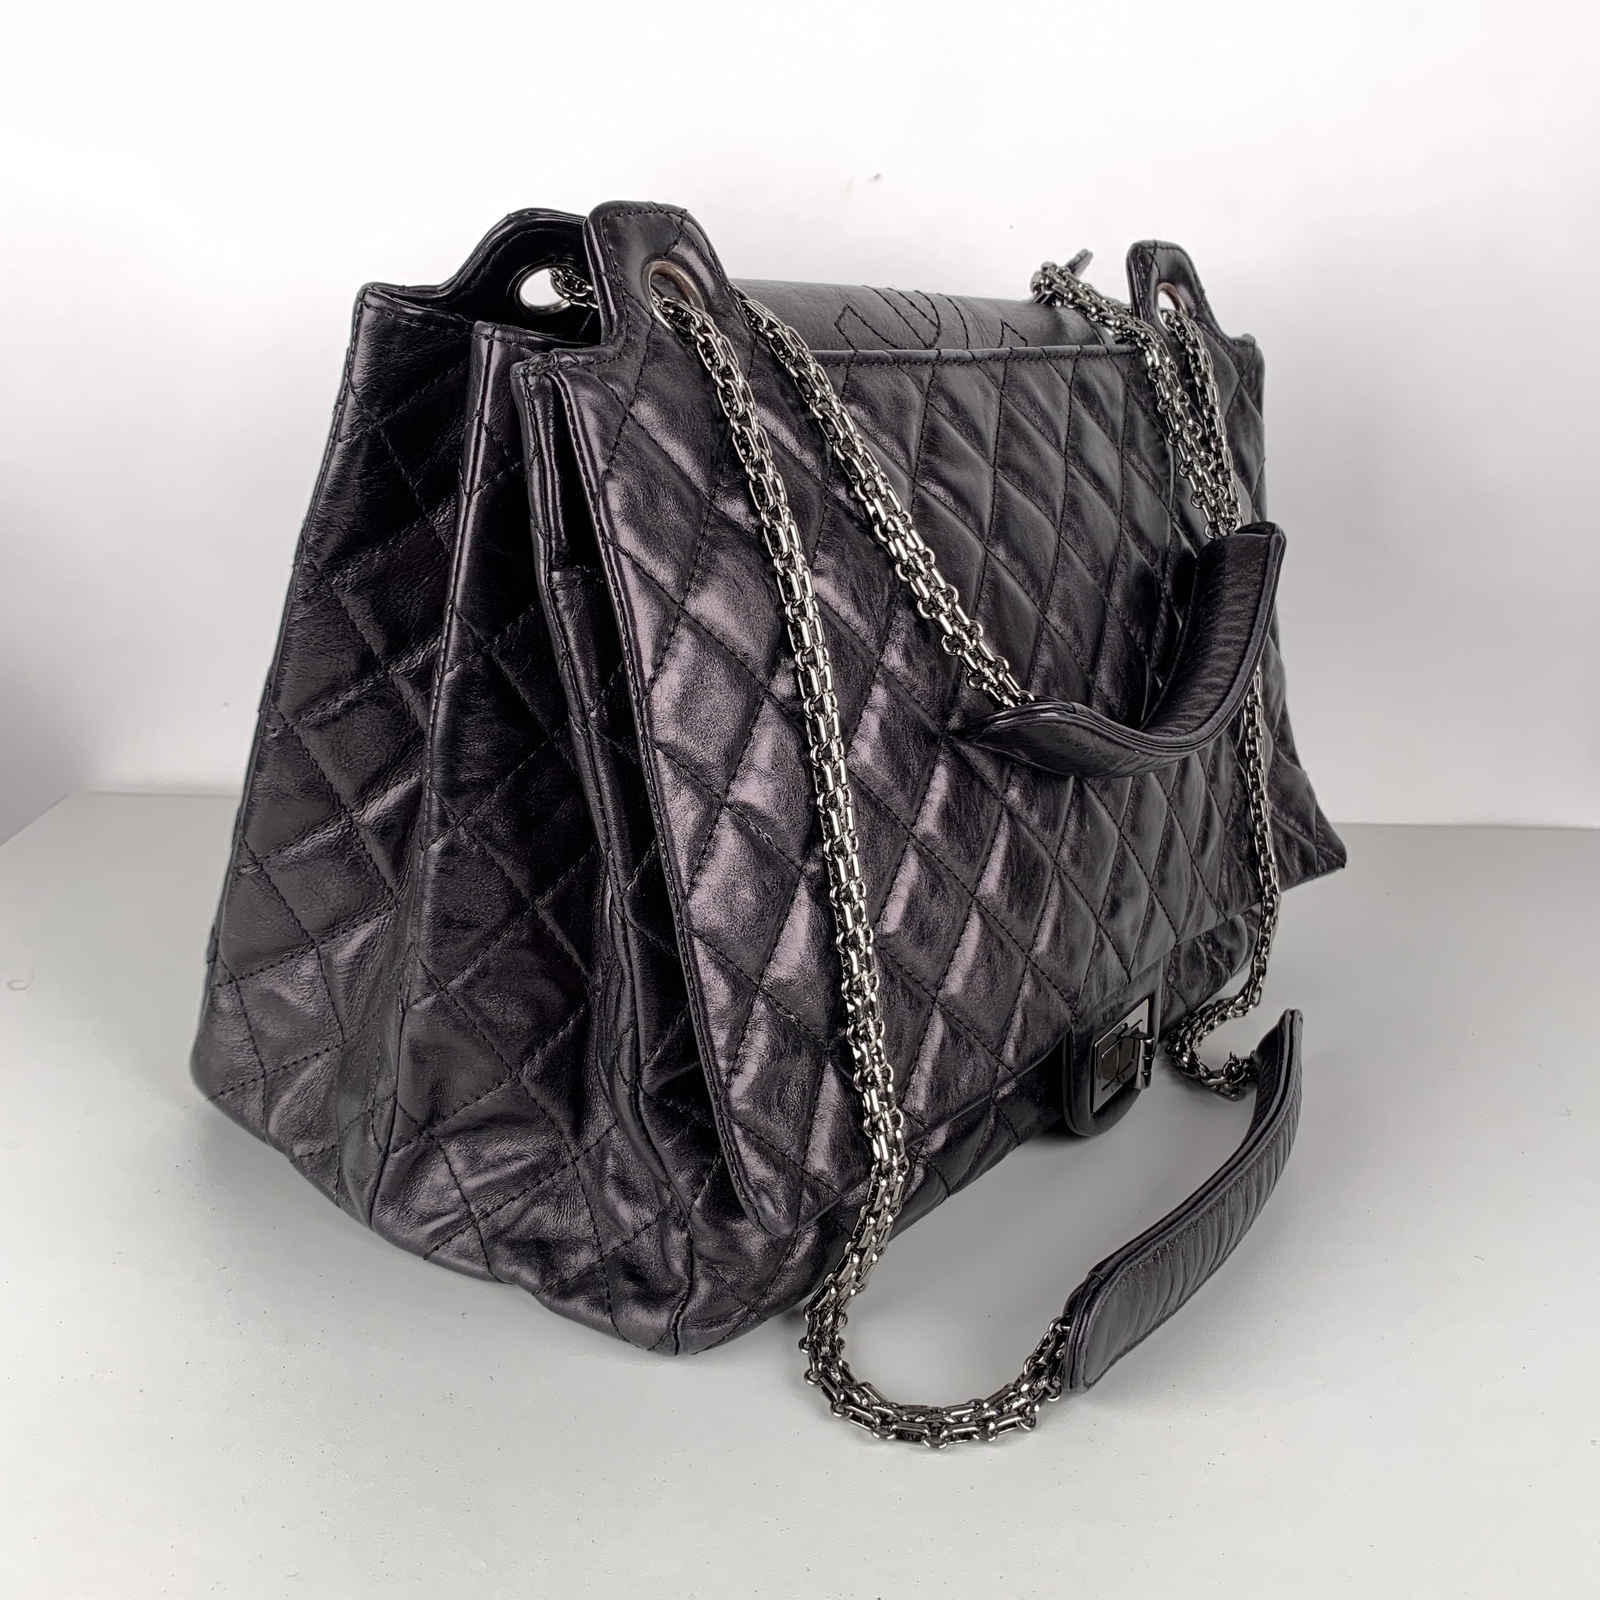 Authentic Chanel Black Quilted Leather Large Reissue 2.55 Accordion Flap Bag image 8